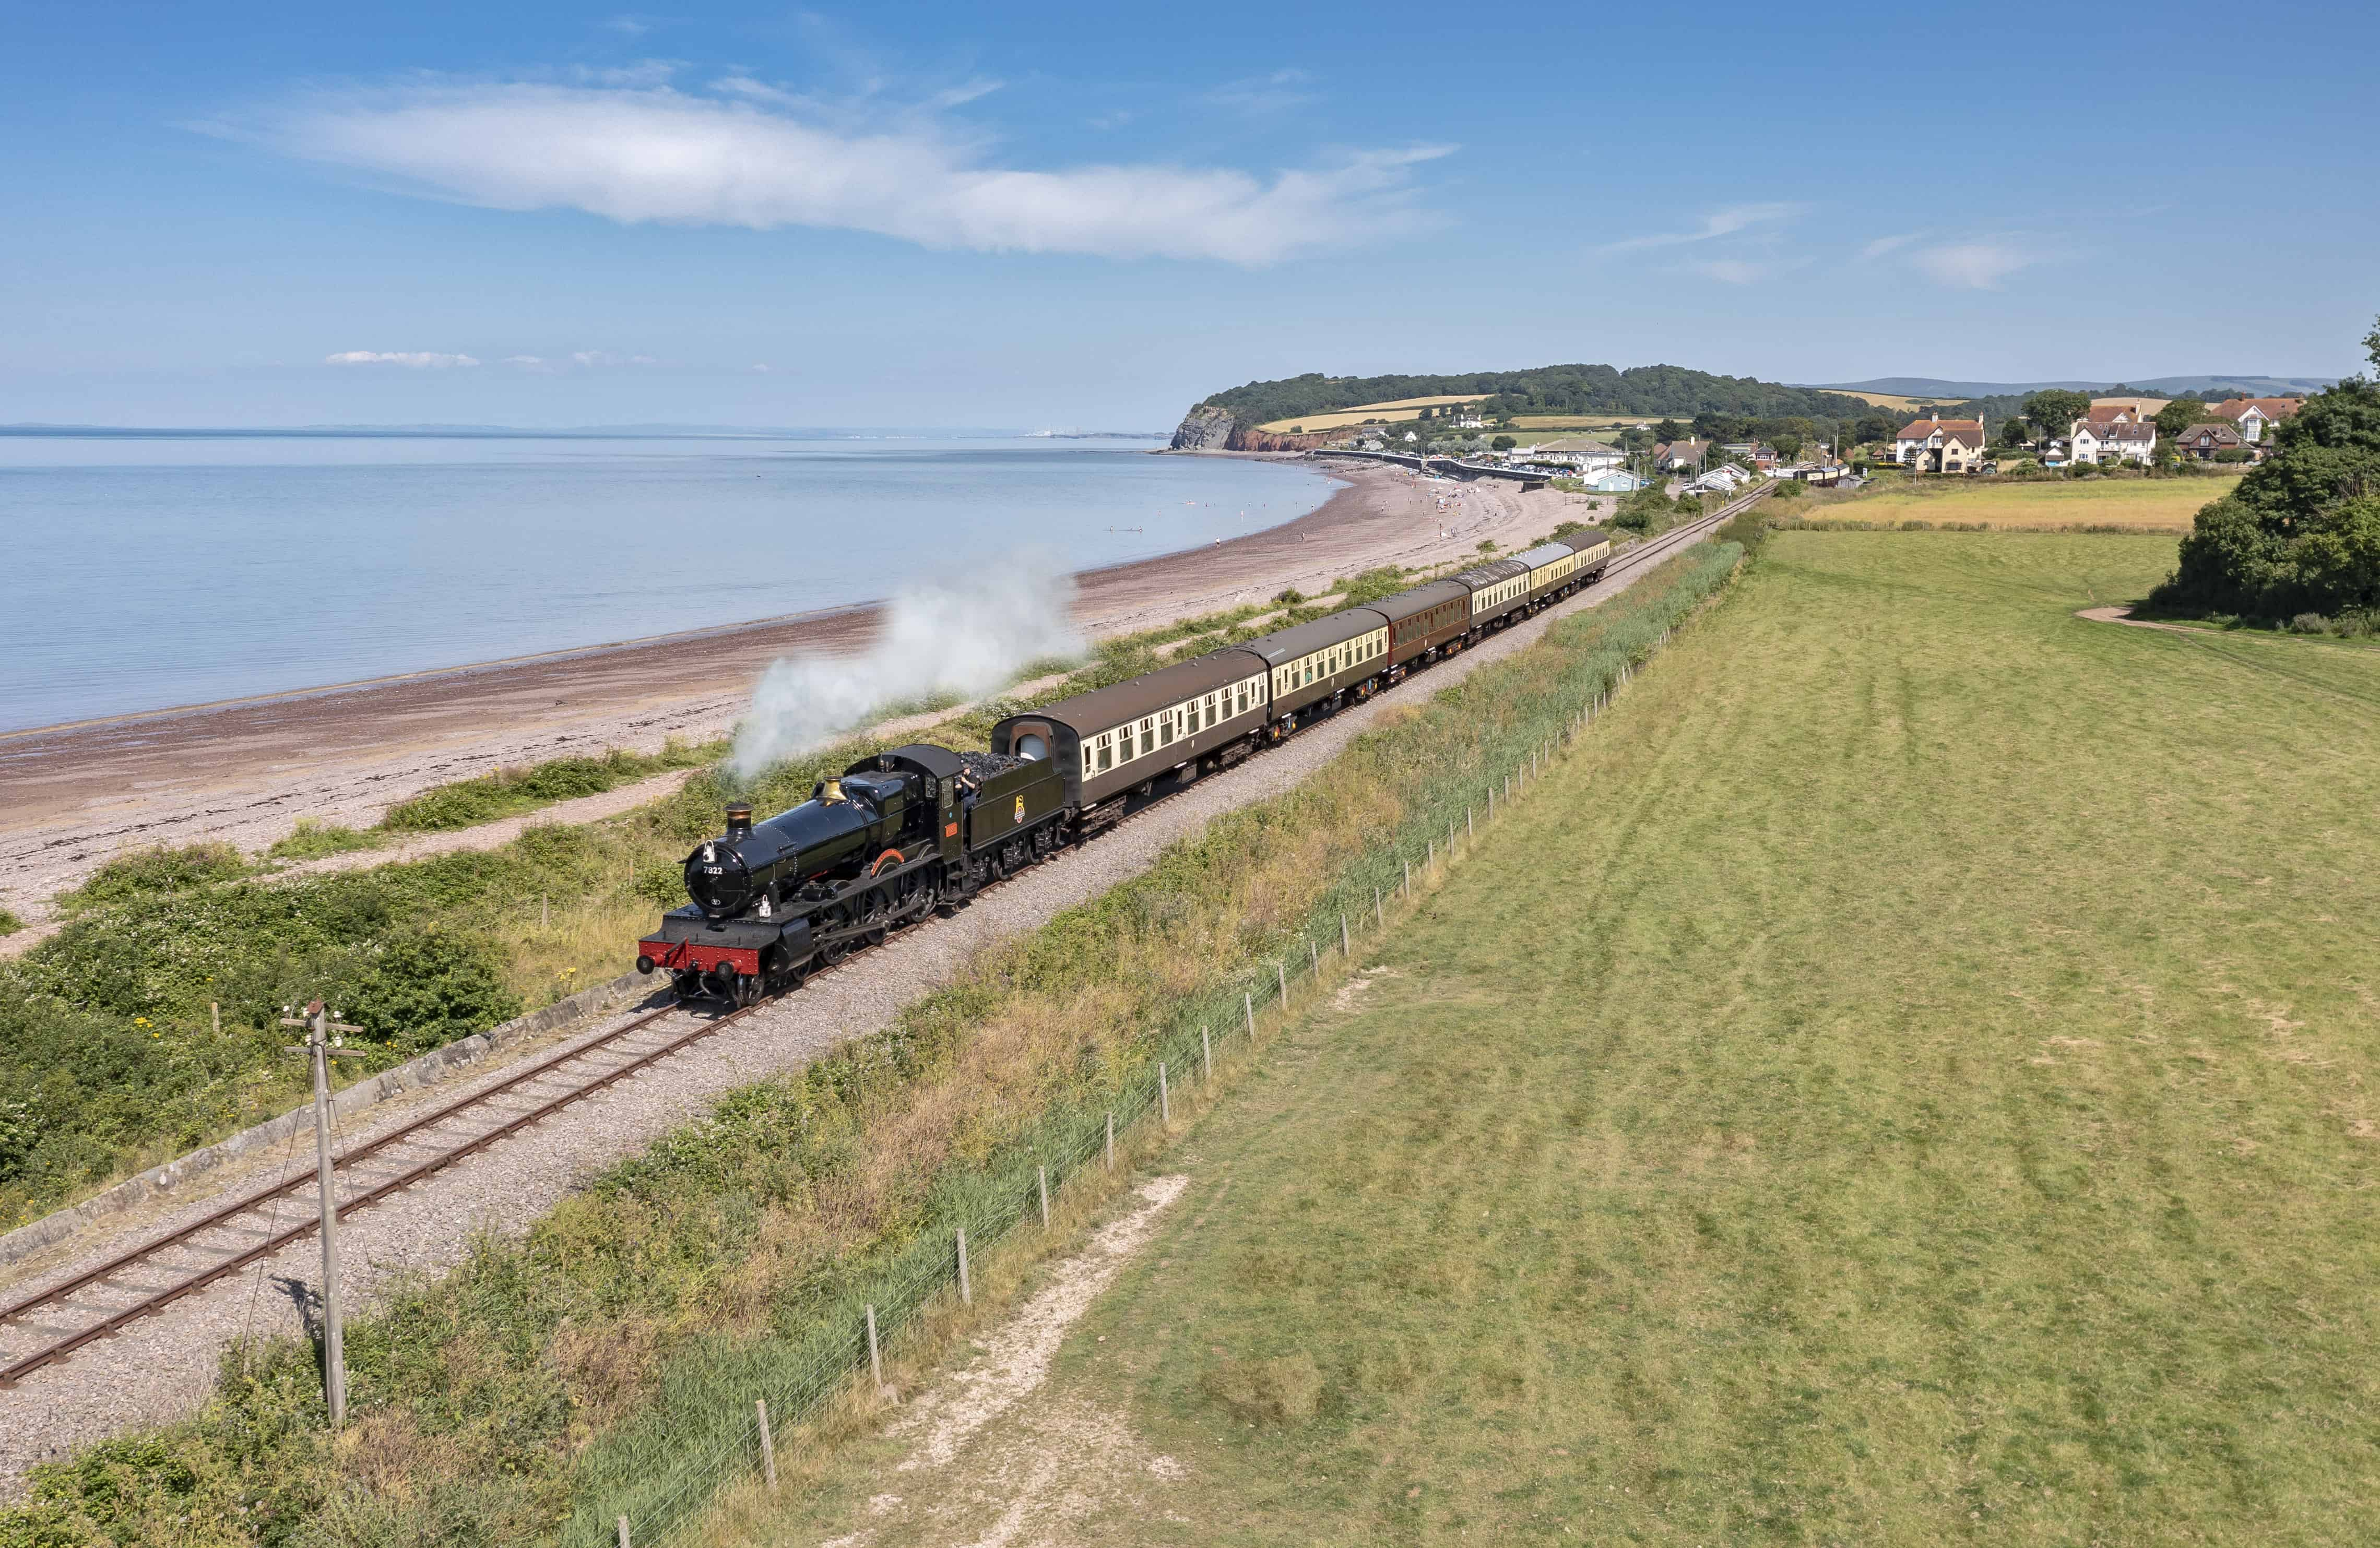 No. 7822 'Foxcote Manor' both leaving Blue Anchor station for Minehead with classic seaside views of the sea and cliffs behind.